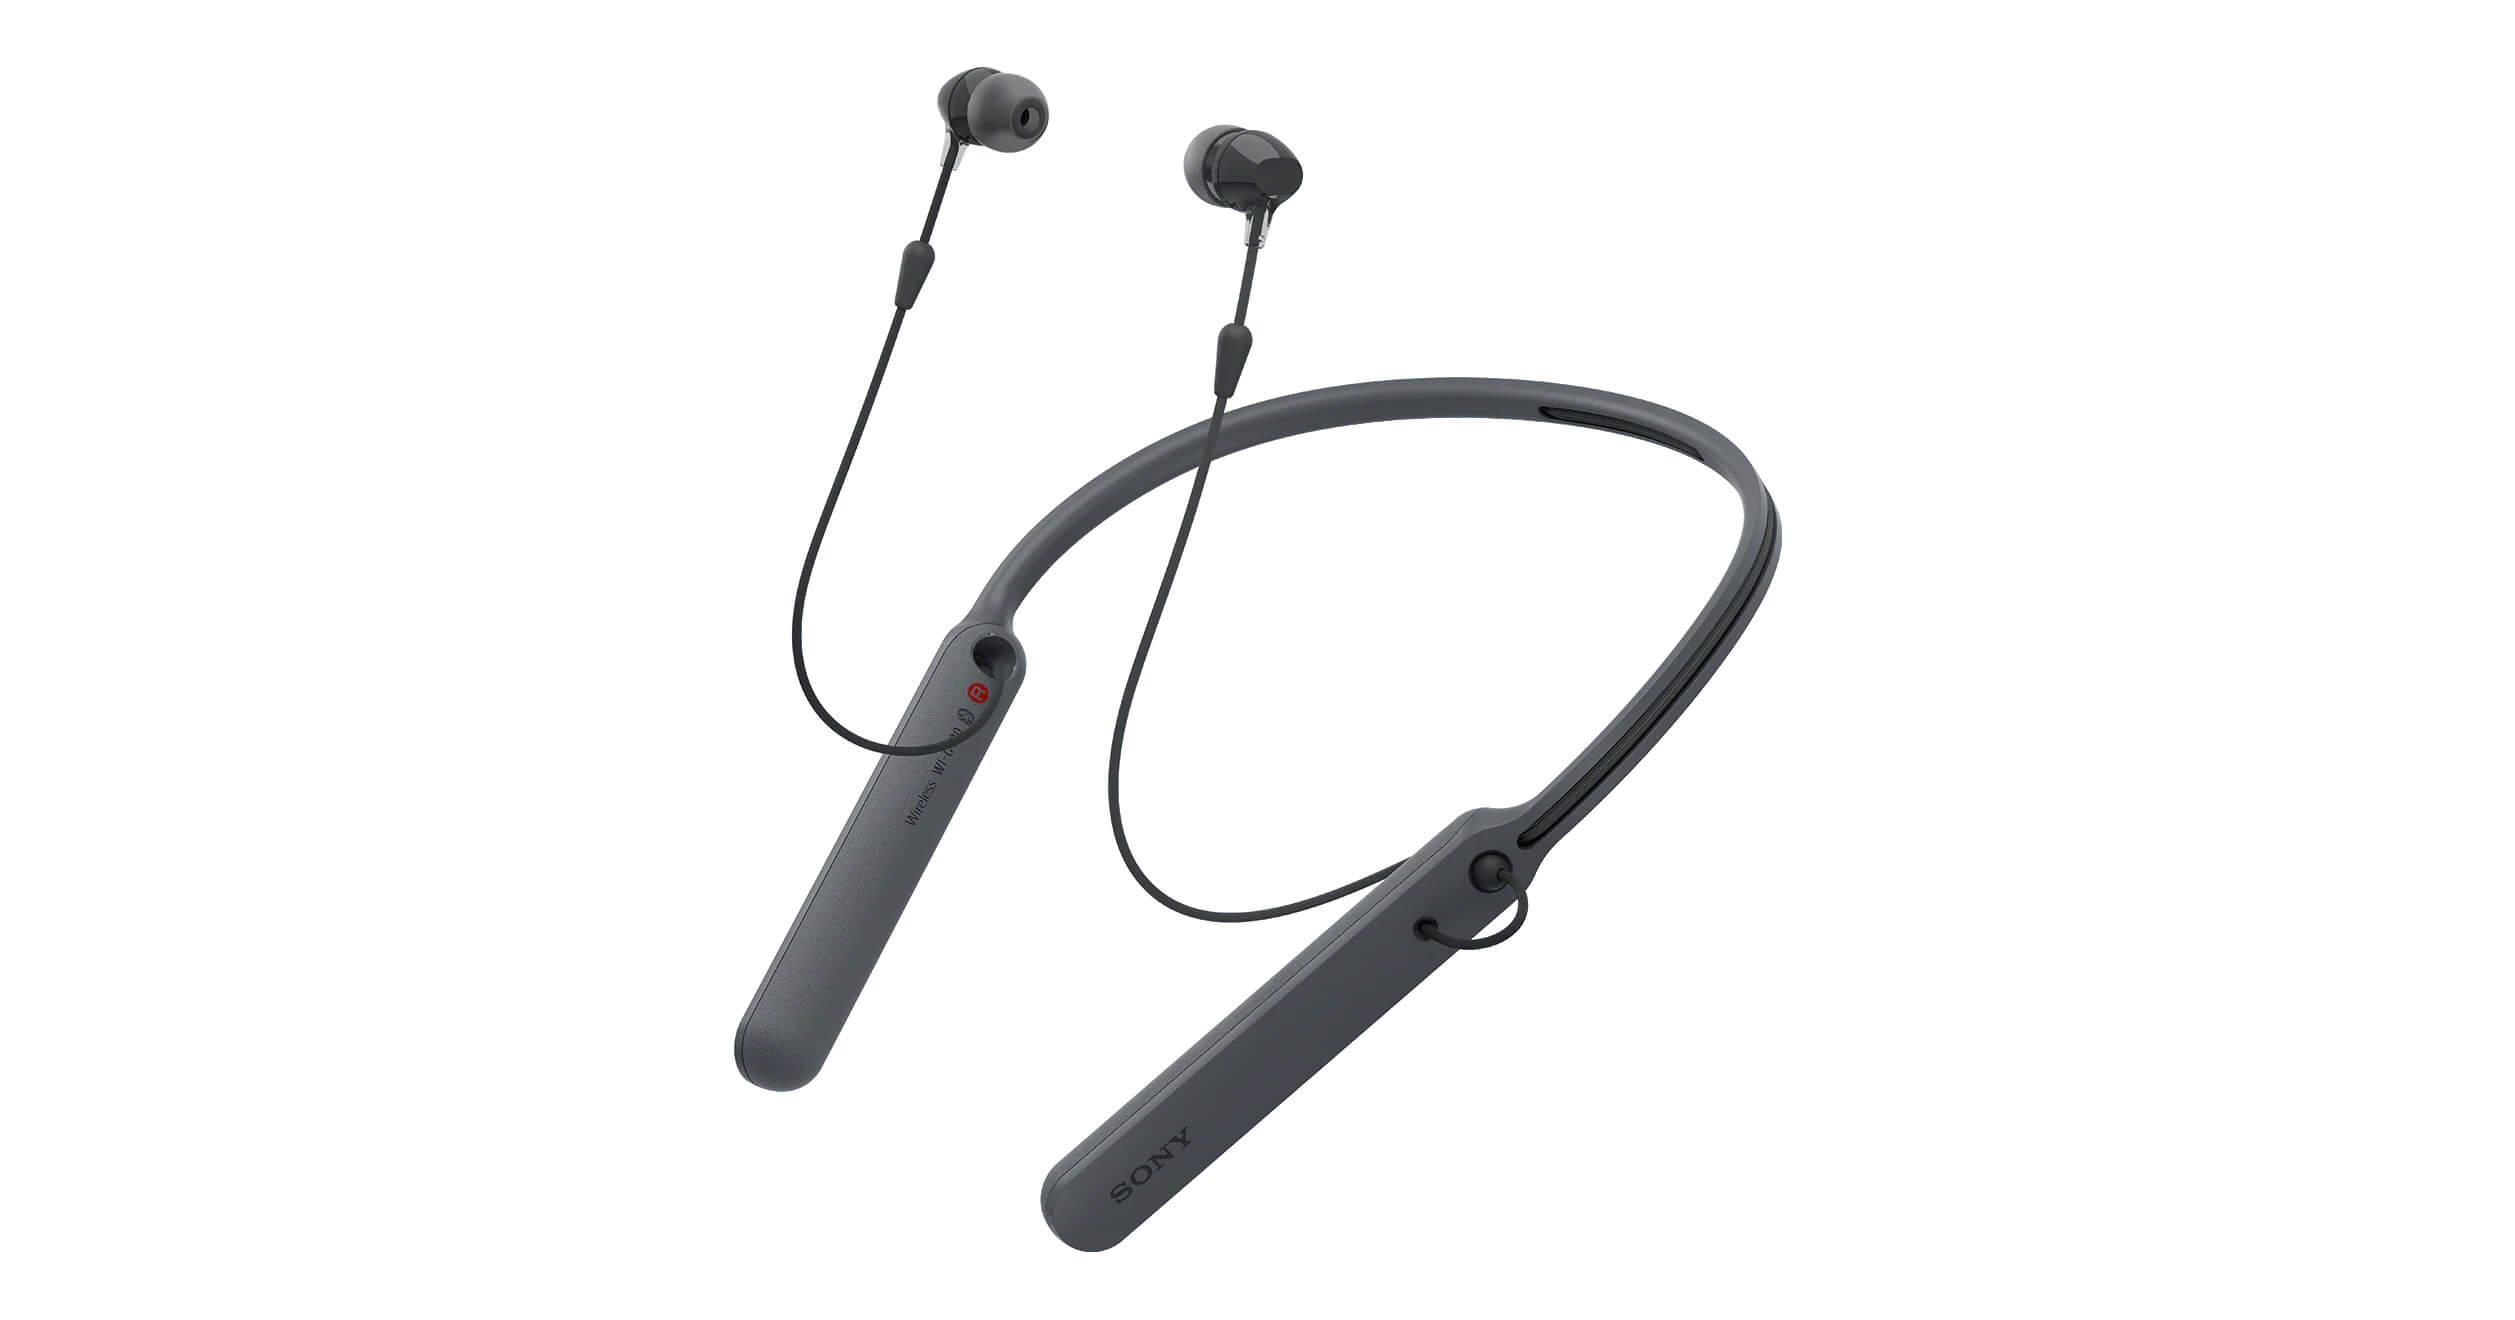 best-neckband-bluetooth-headphones-sony-wI-c400-wireless-stereo